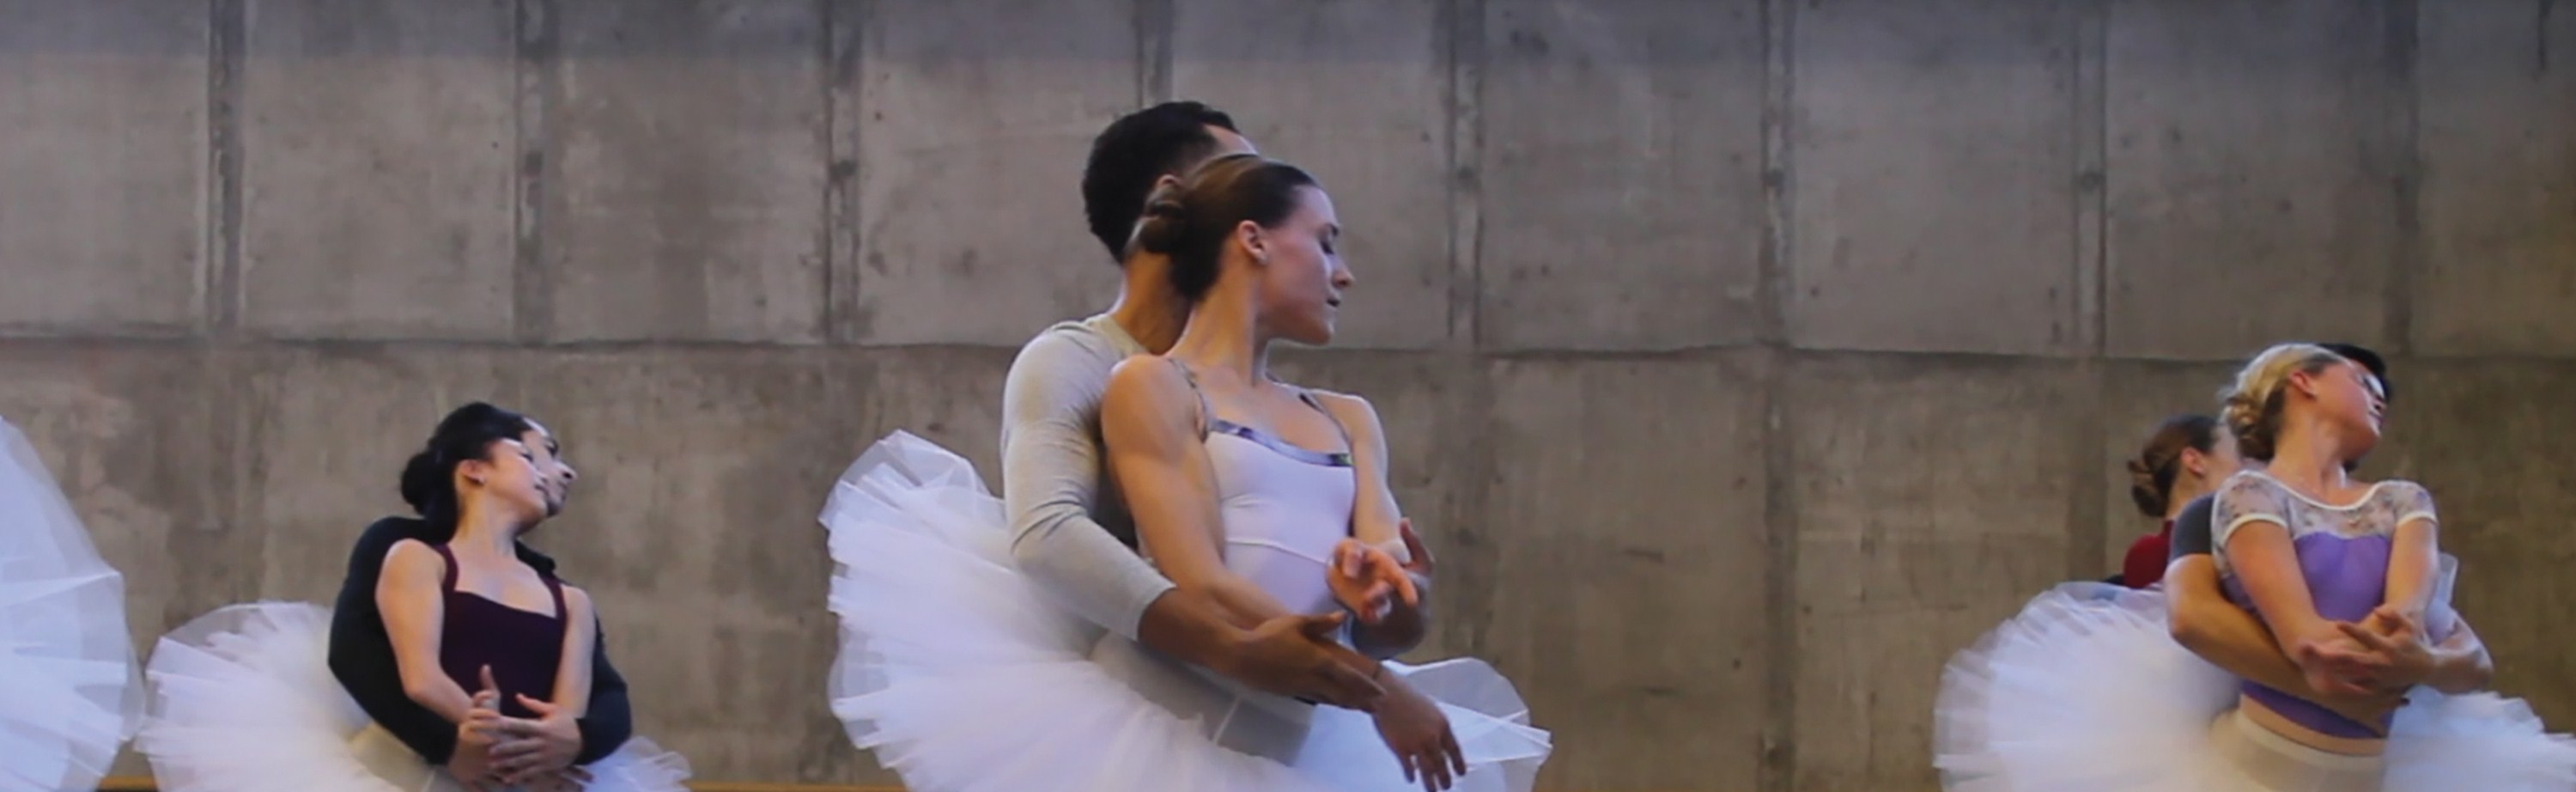 TWO HEARTS THAT BEAT AS ONE: KC Ballet presents its first full-length 'Swan Lake'